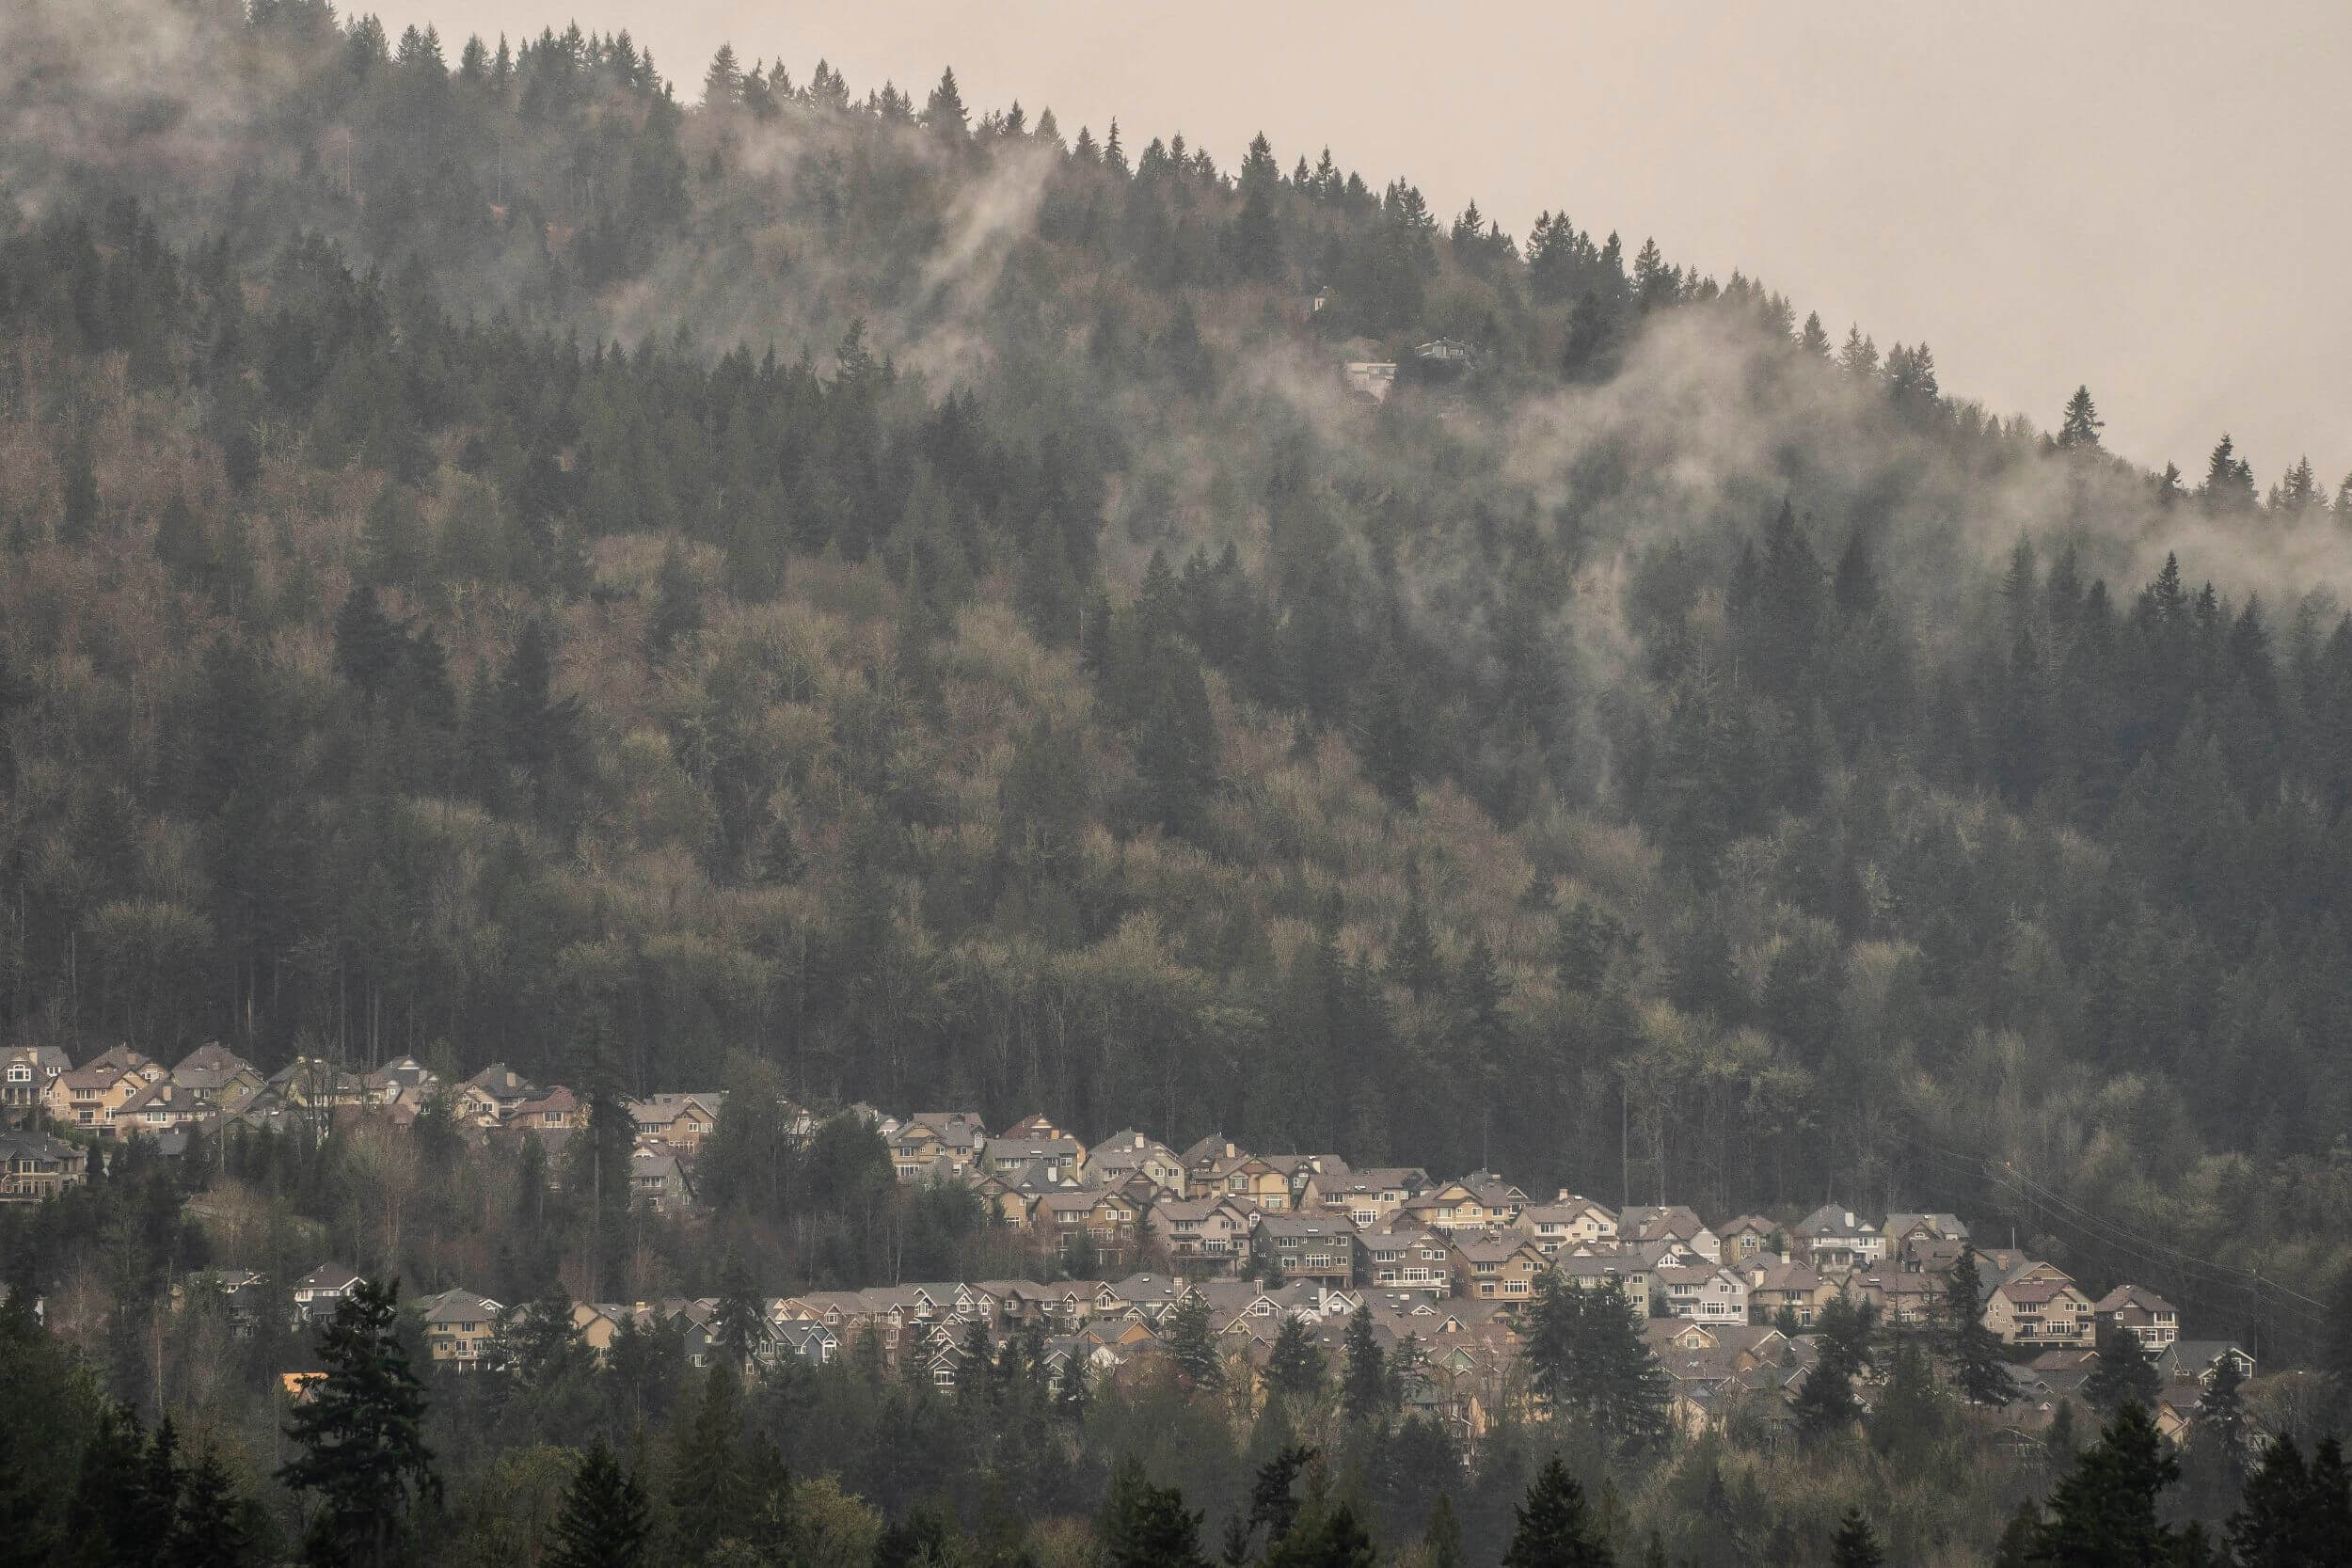 A foggy view of a hillside covered in trees and, below, residential houses.